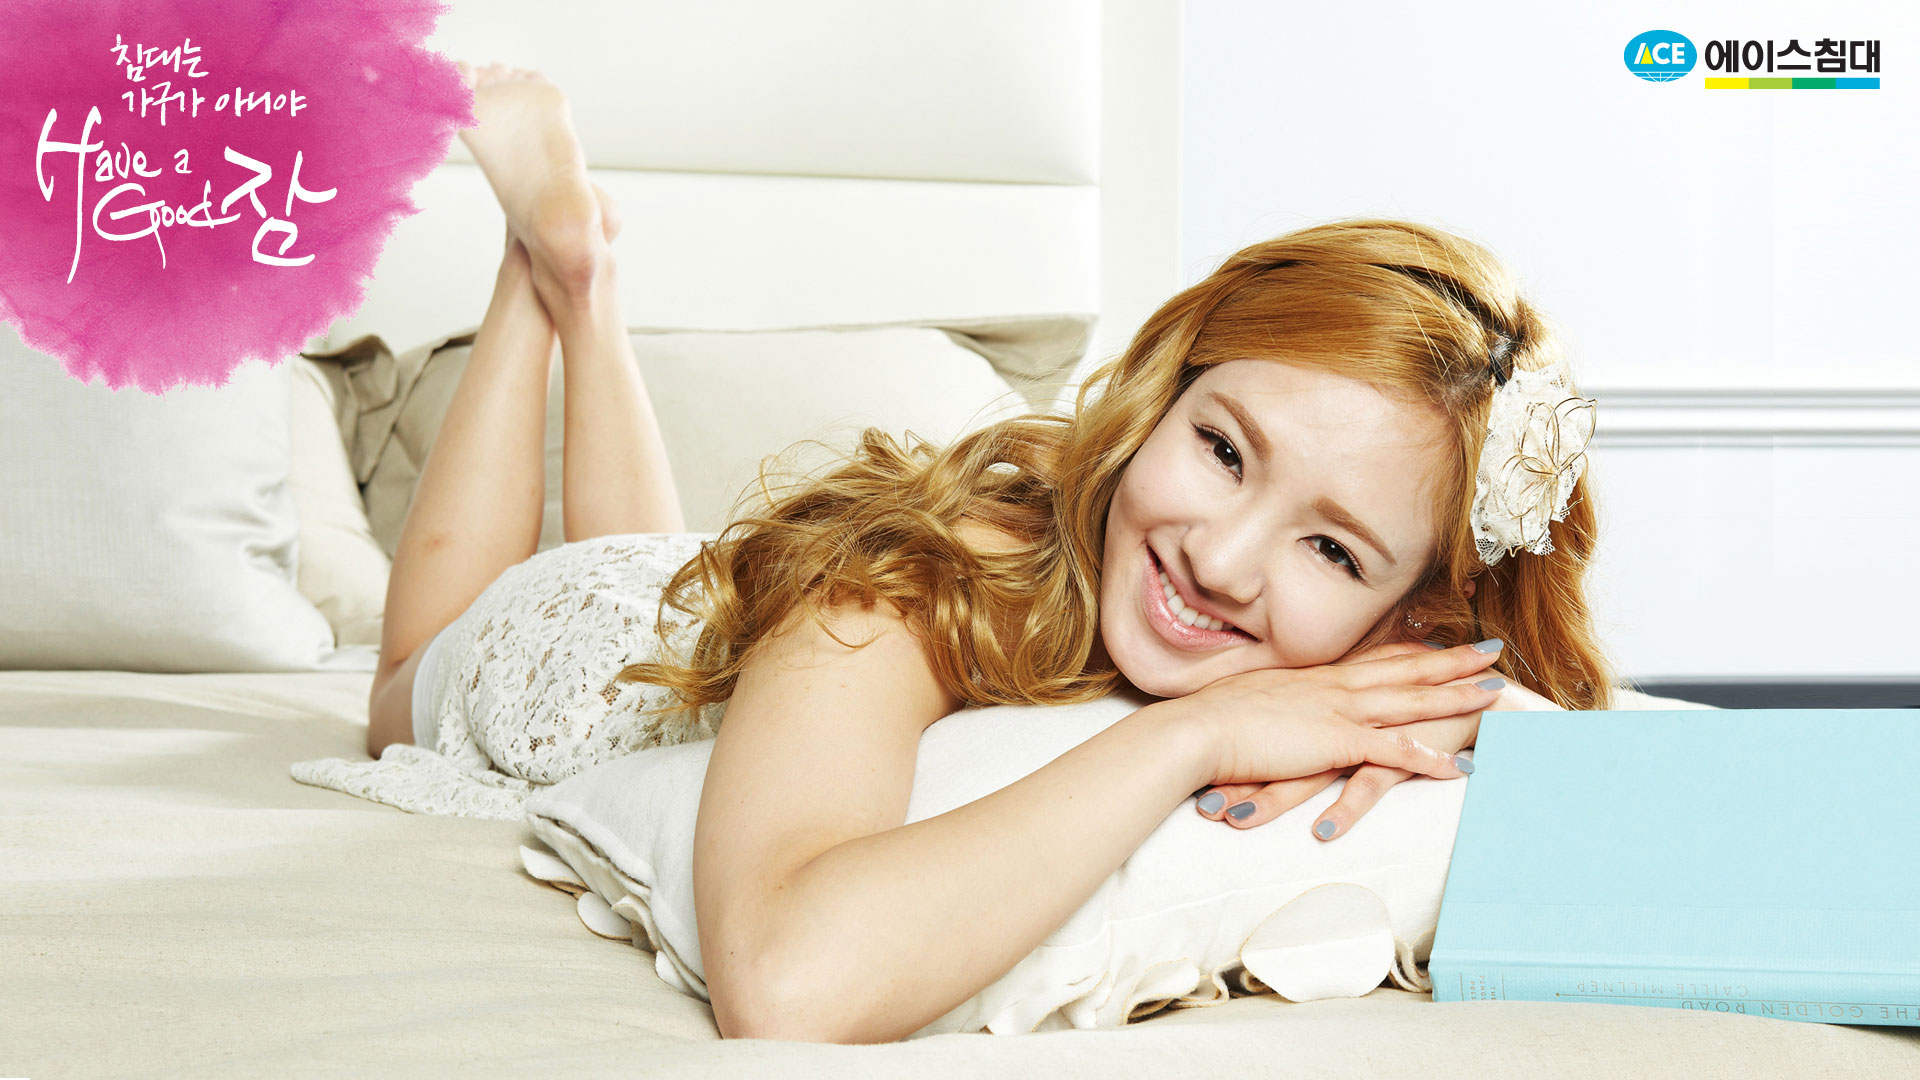 SNSD Hyoyeon Ace Bed wallpaper